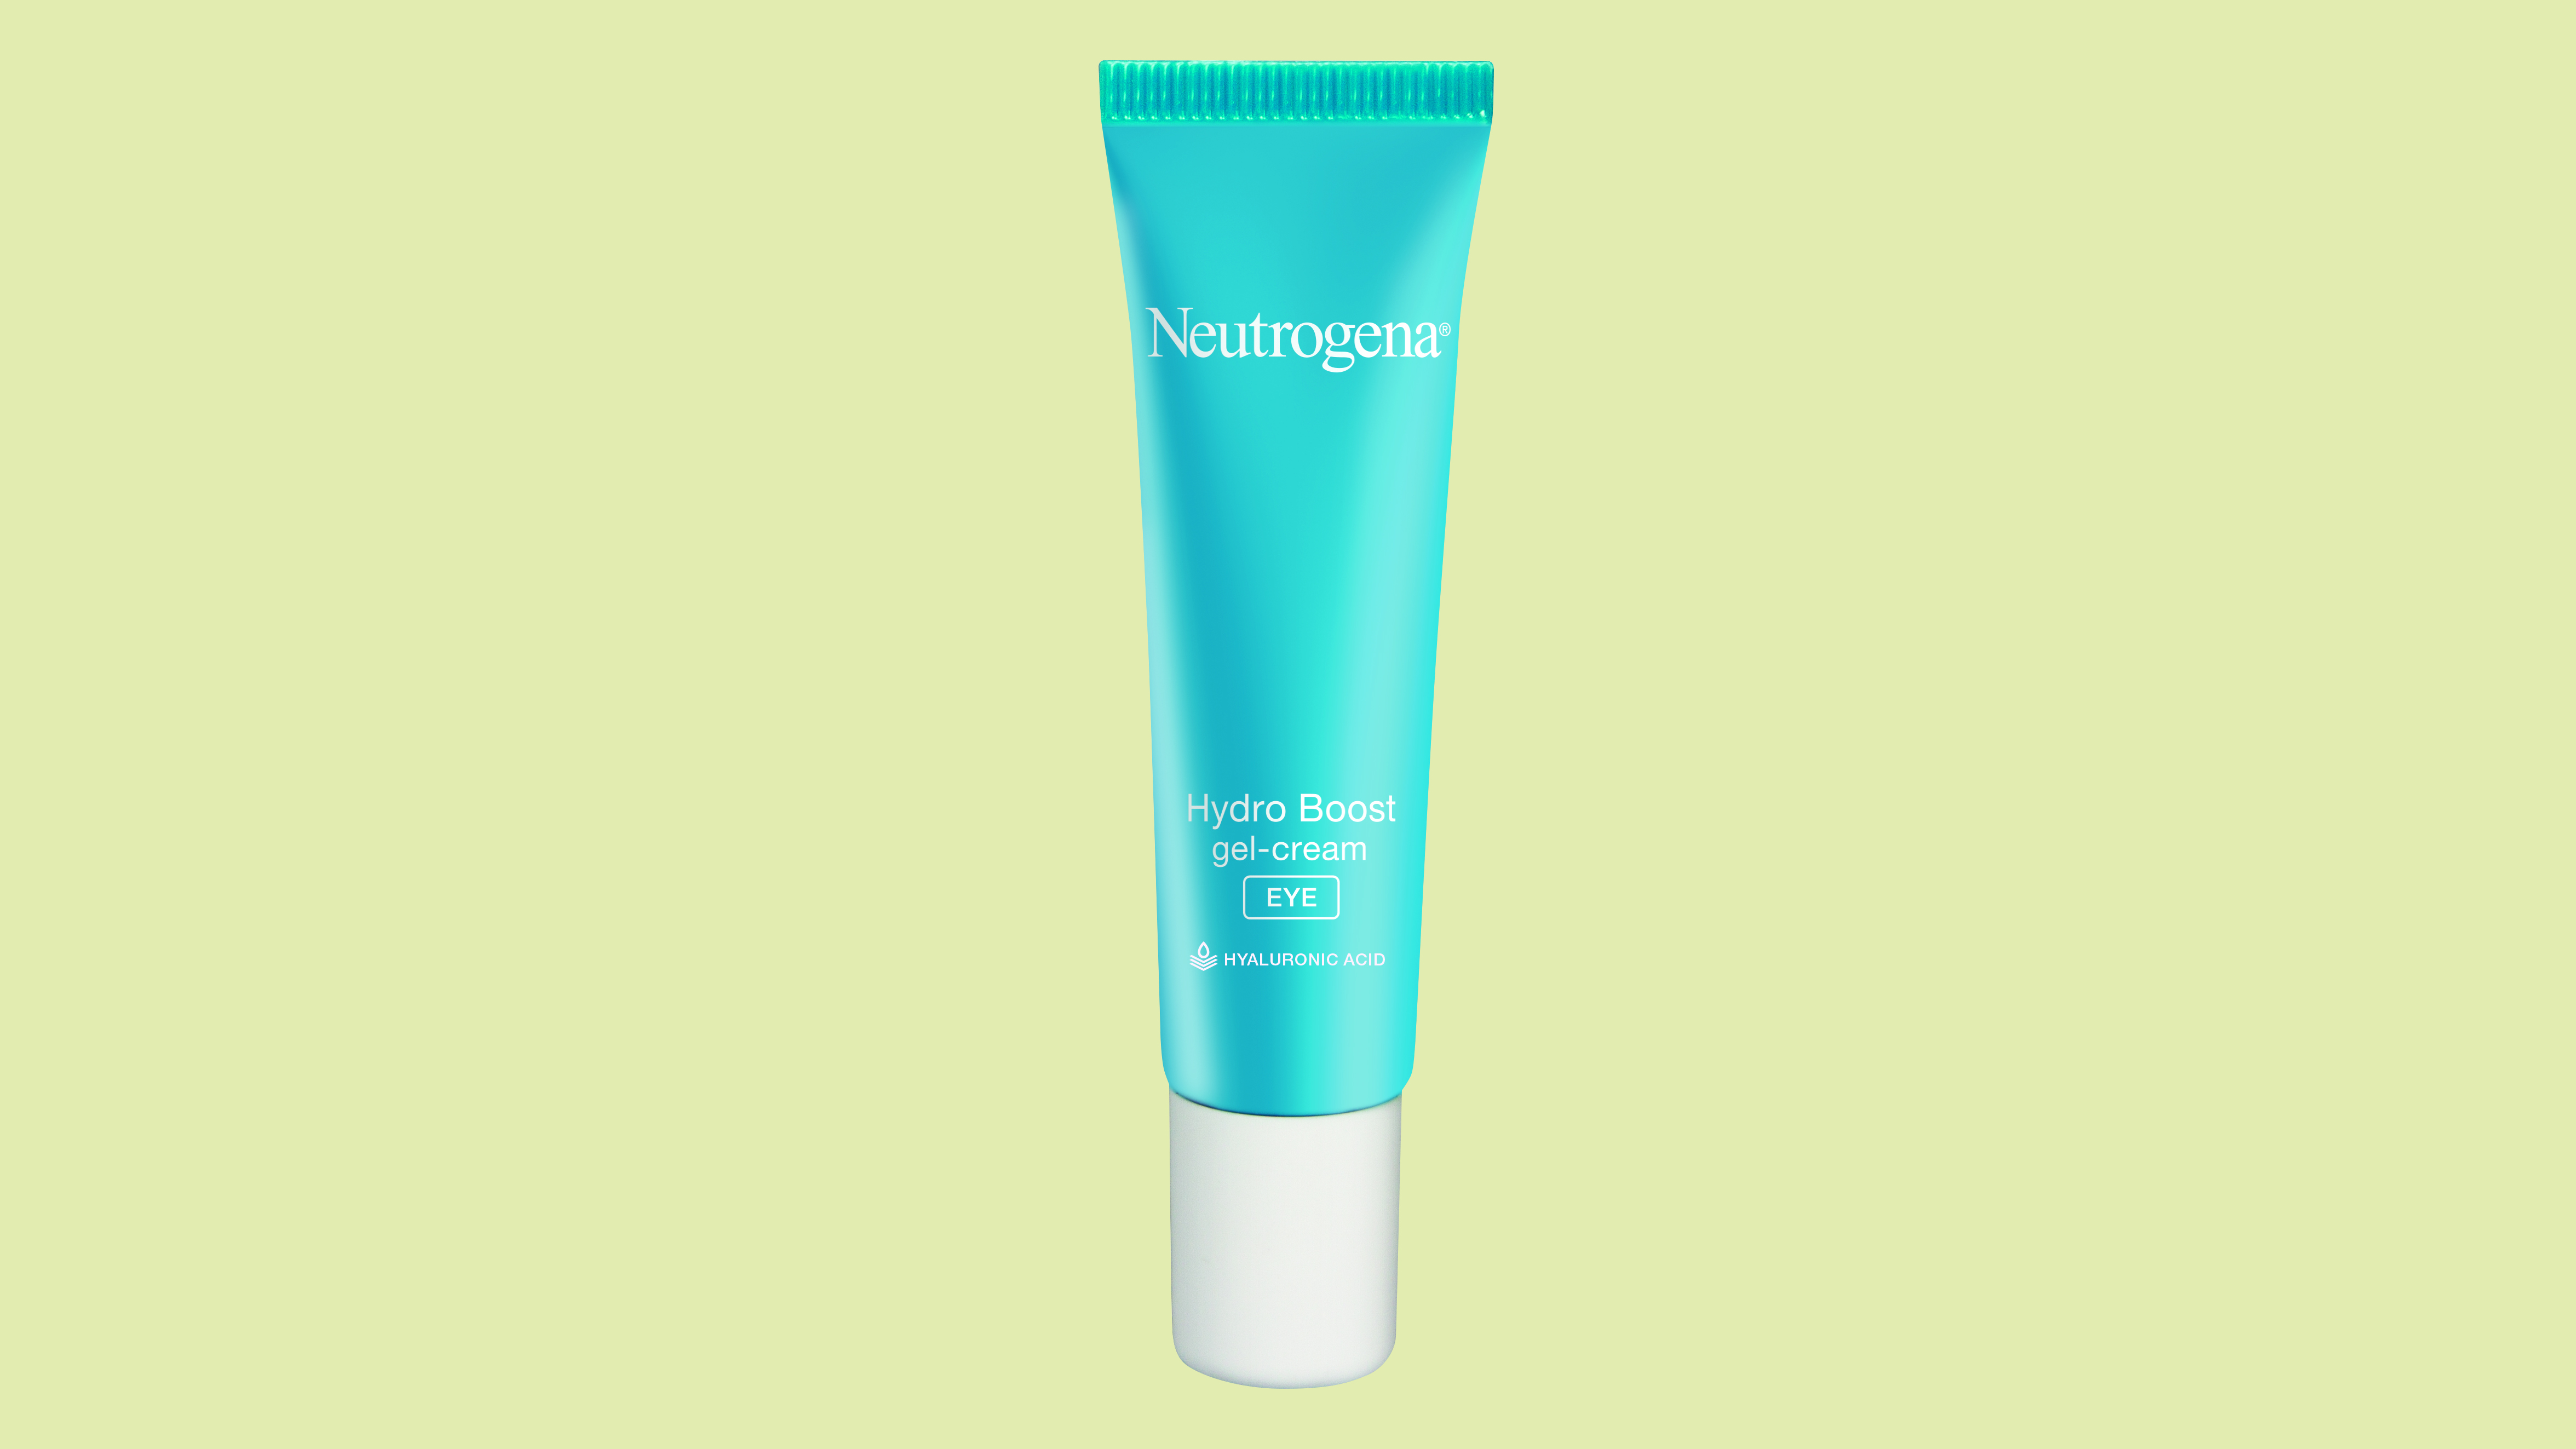 Neutrogena Hydro Boost Hyaluronic Acid Gel Eye Cream